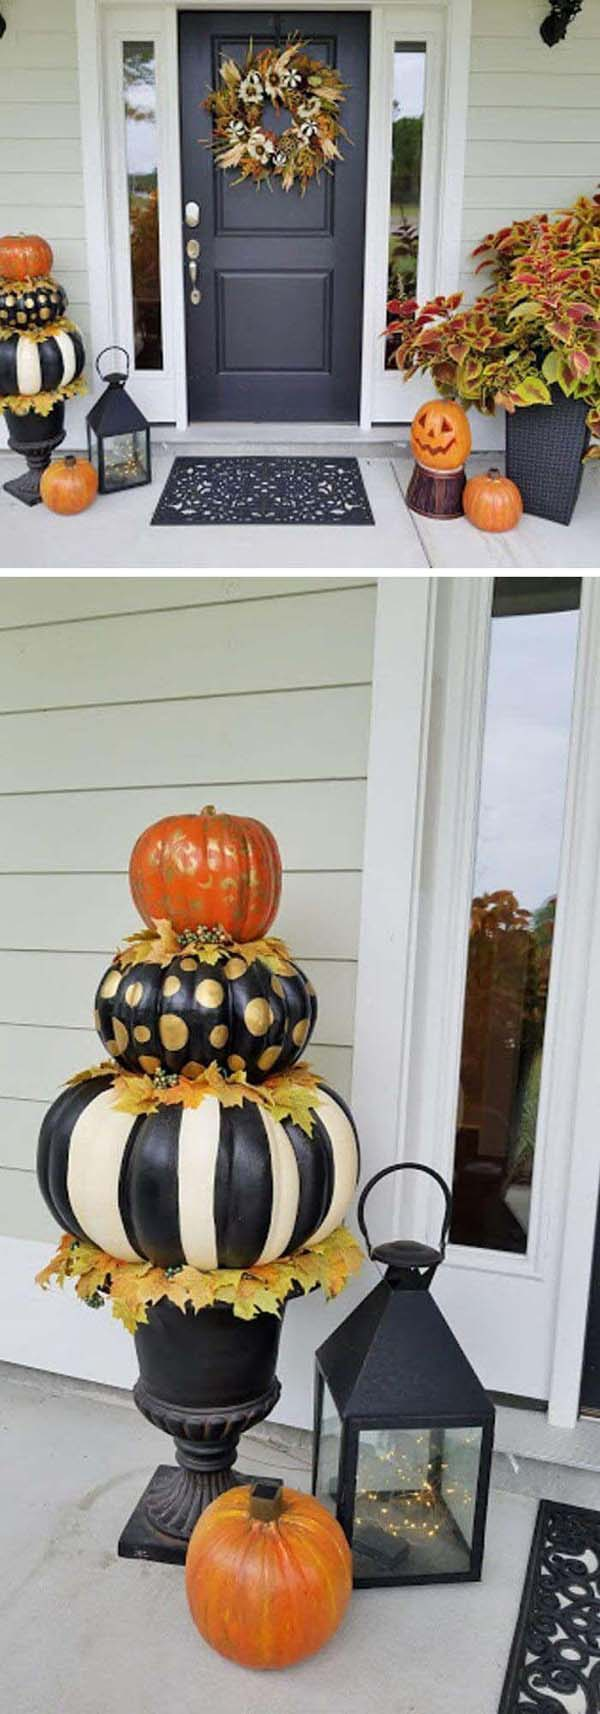 Hand Painted Halloween Pumpkin Topiary for Porch Decor #topiary #halloween #homedecorimage